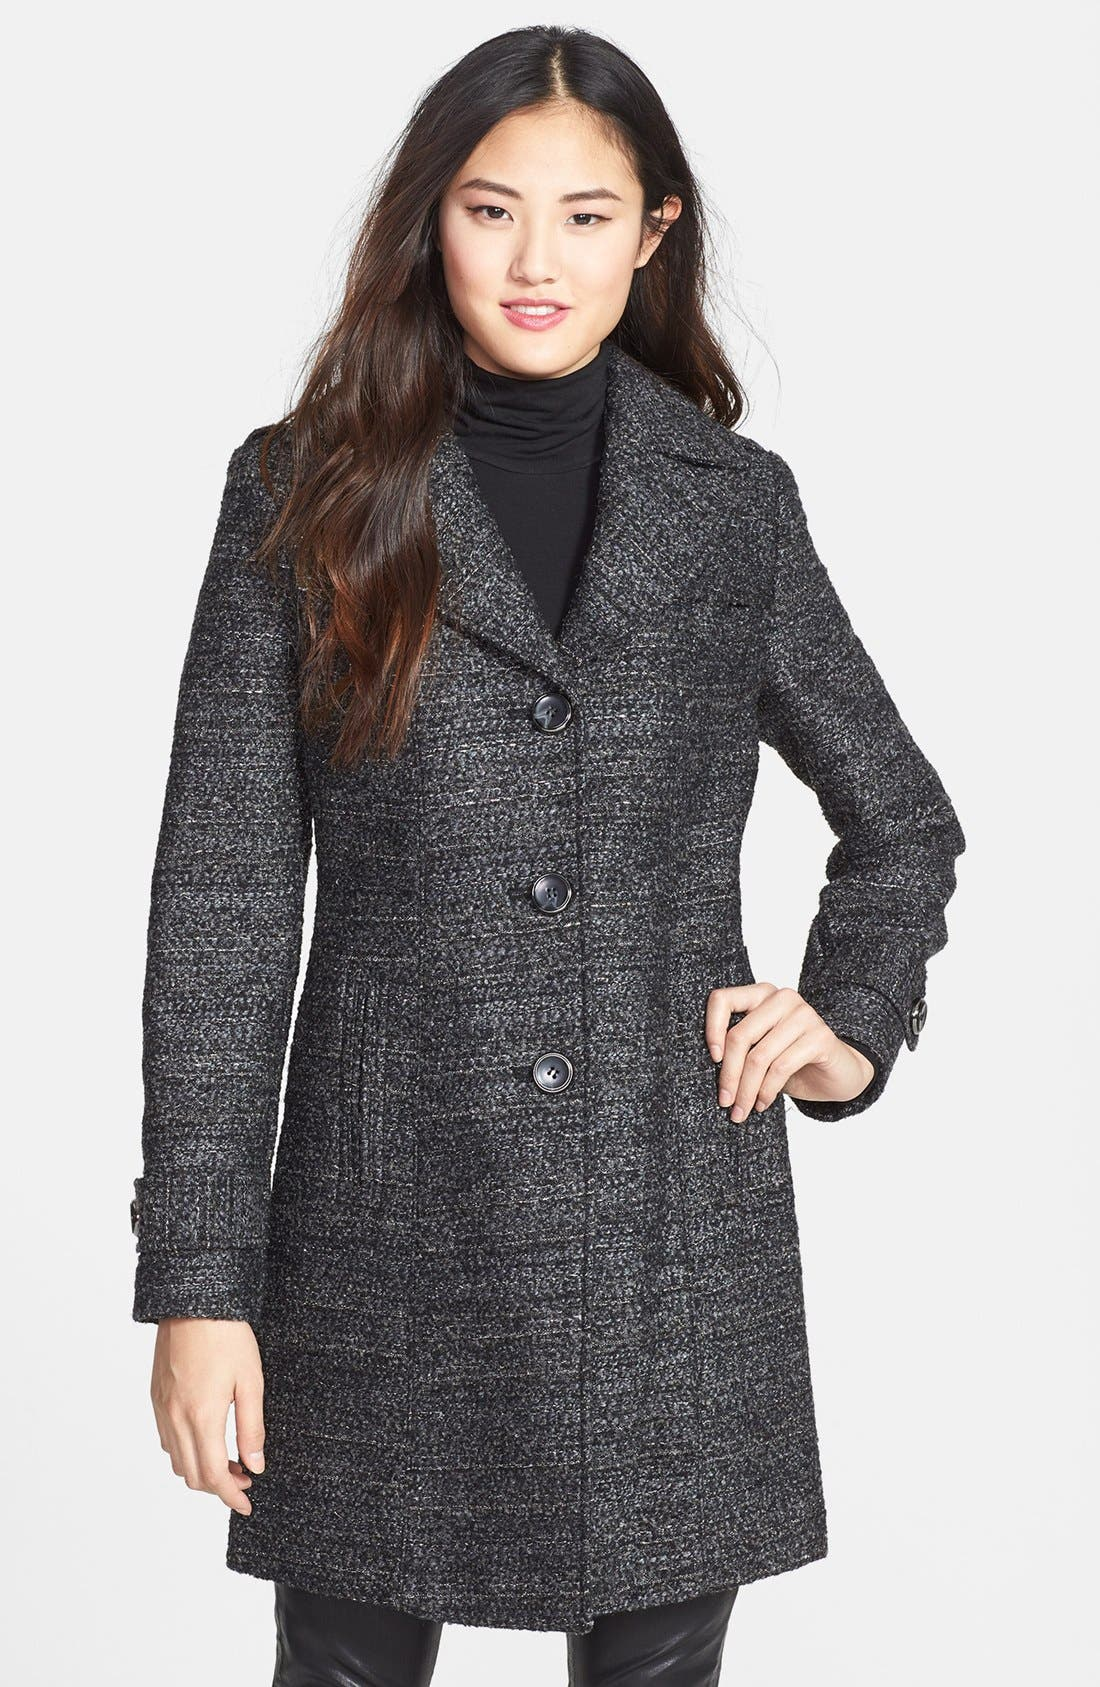 Alternate Image 1 Selected - Kenneth Cole New York Metallic Tweed Walking Coat (Online Only)